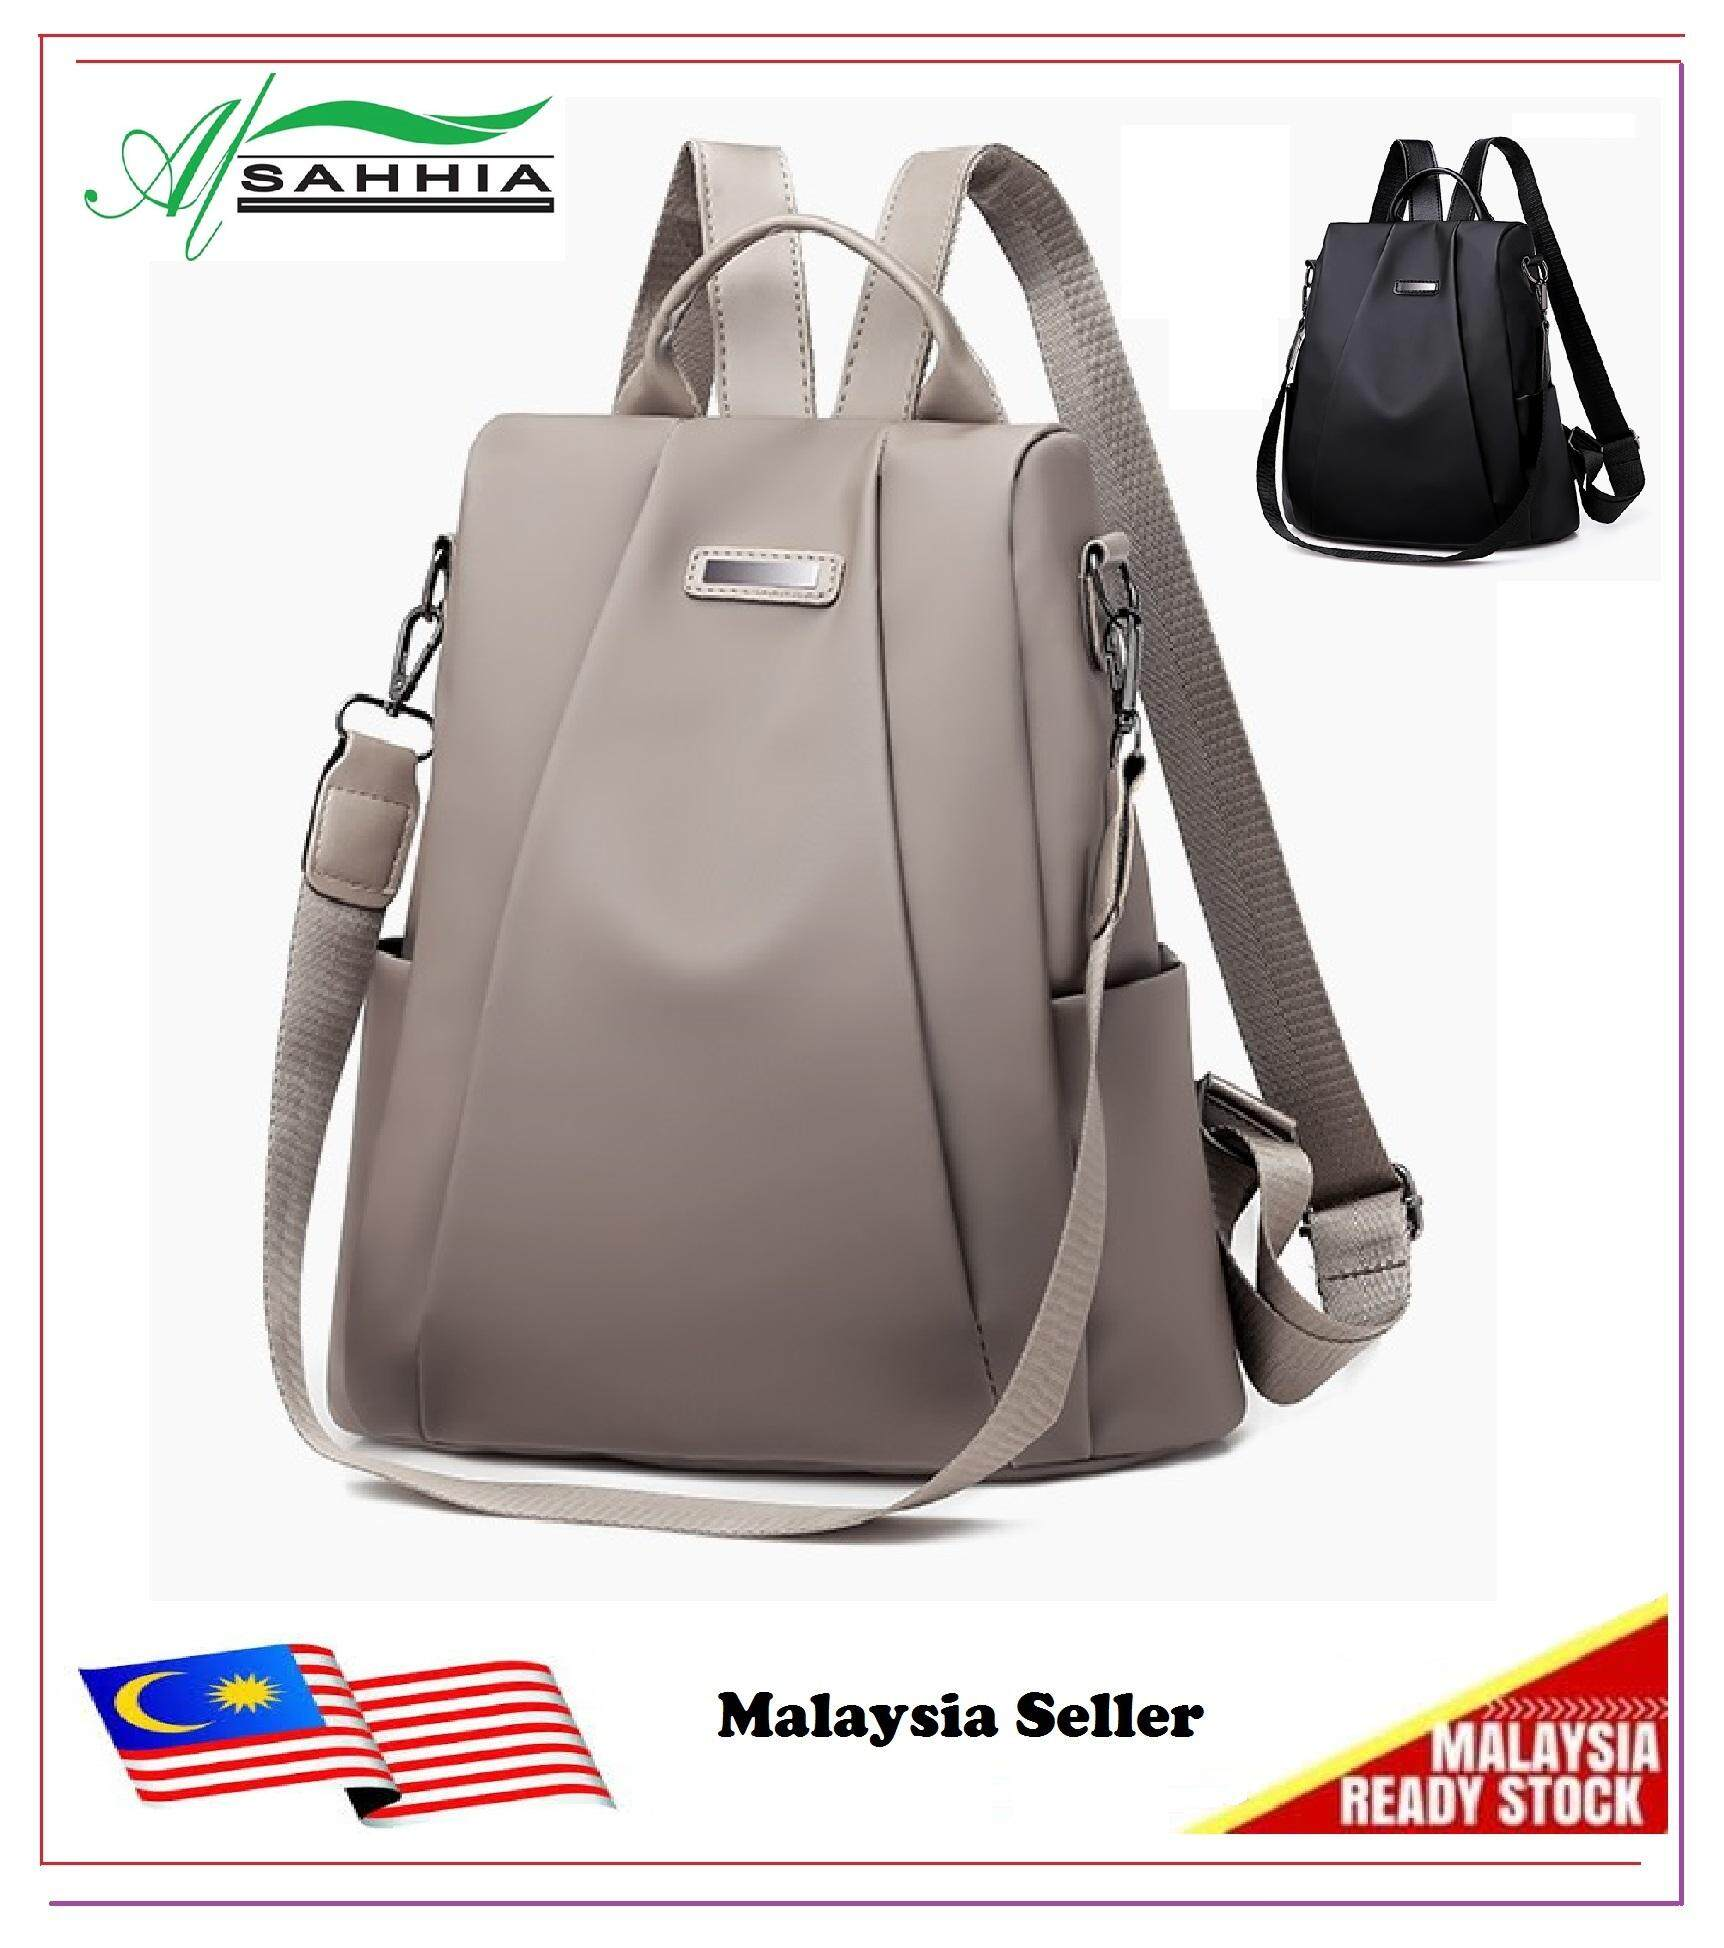 8deaa3f280ae Al Sahhia Ready Stock Plain Oxford Cloth Anti Theft Backpack Casual Lady Beg